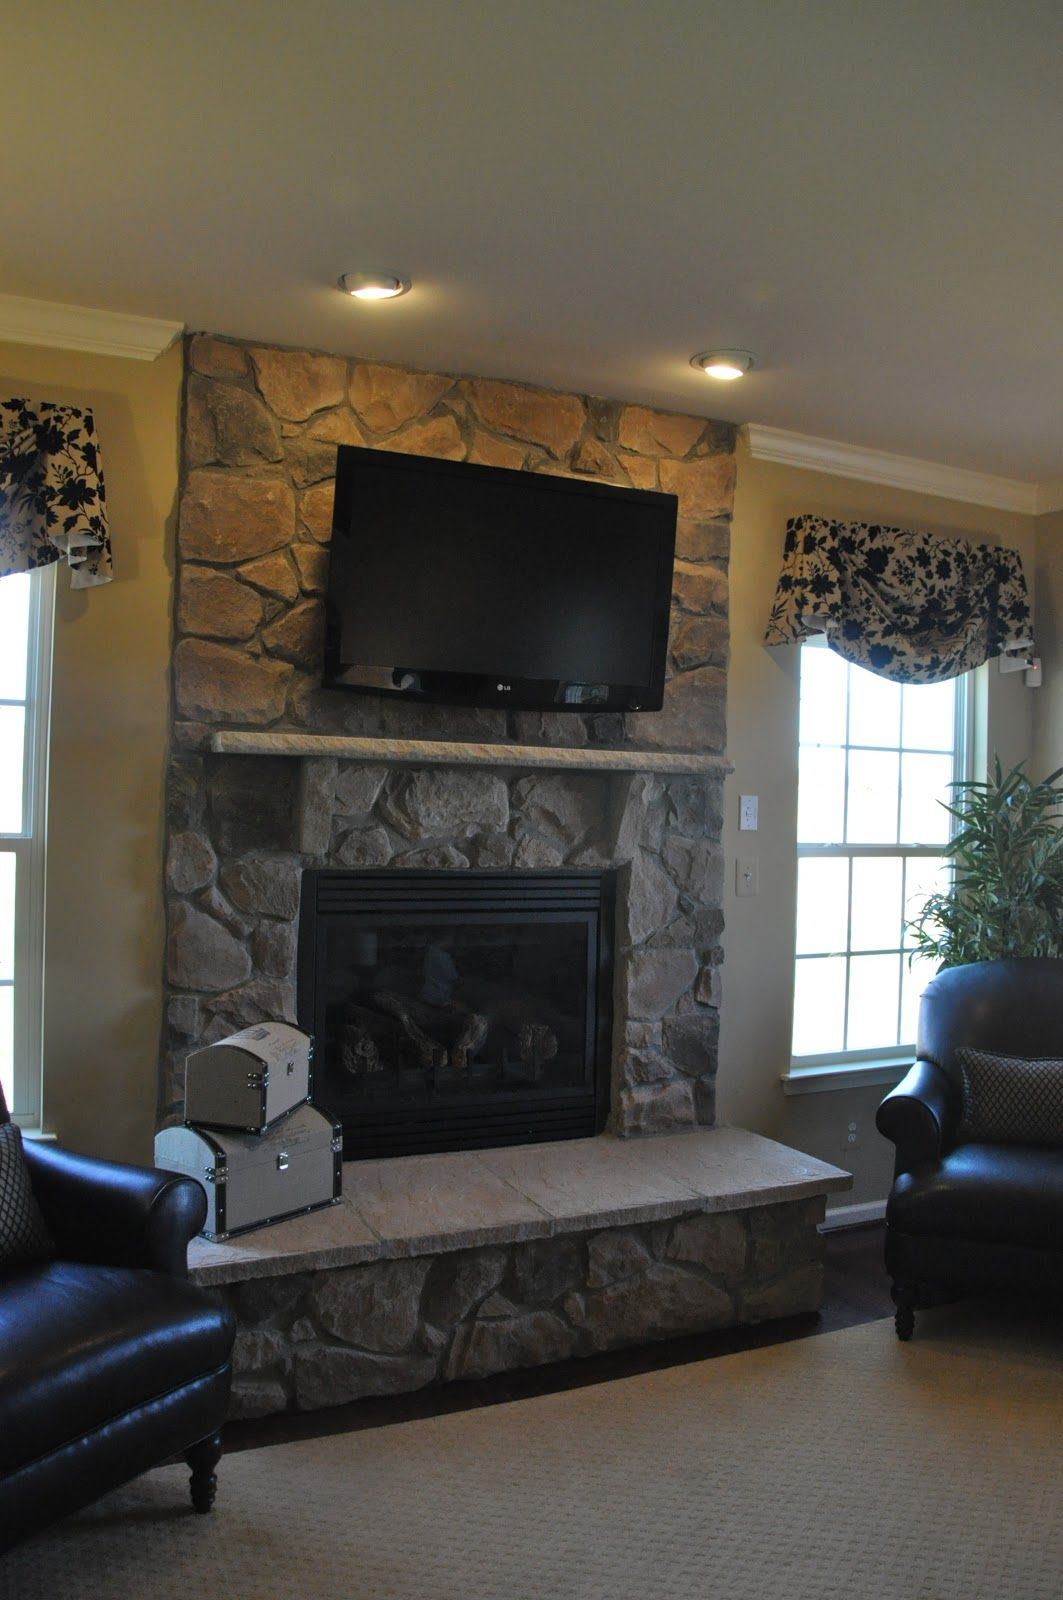 Building a ryan homes ravenna tv over the fireplace or for Tv over fireplace